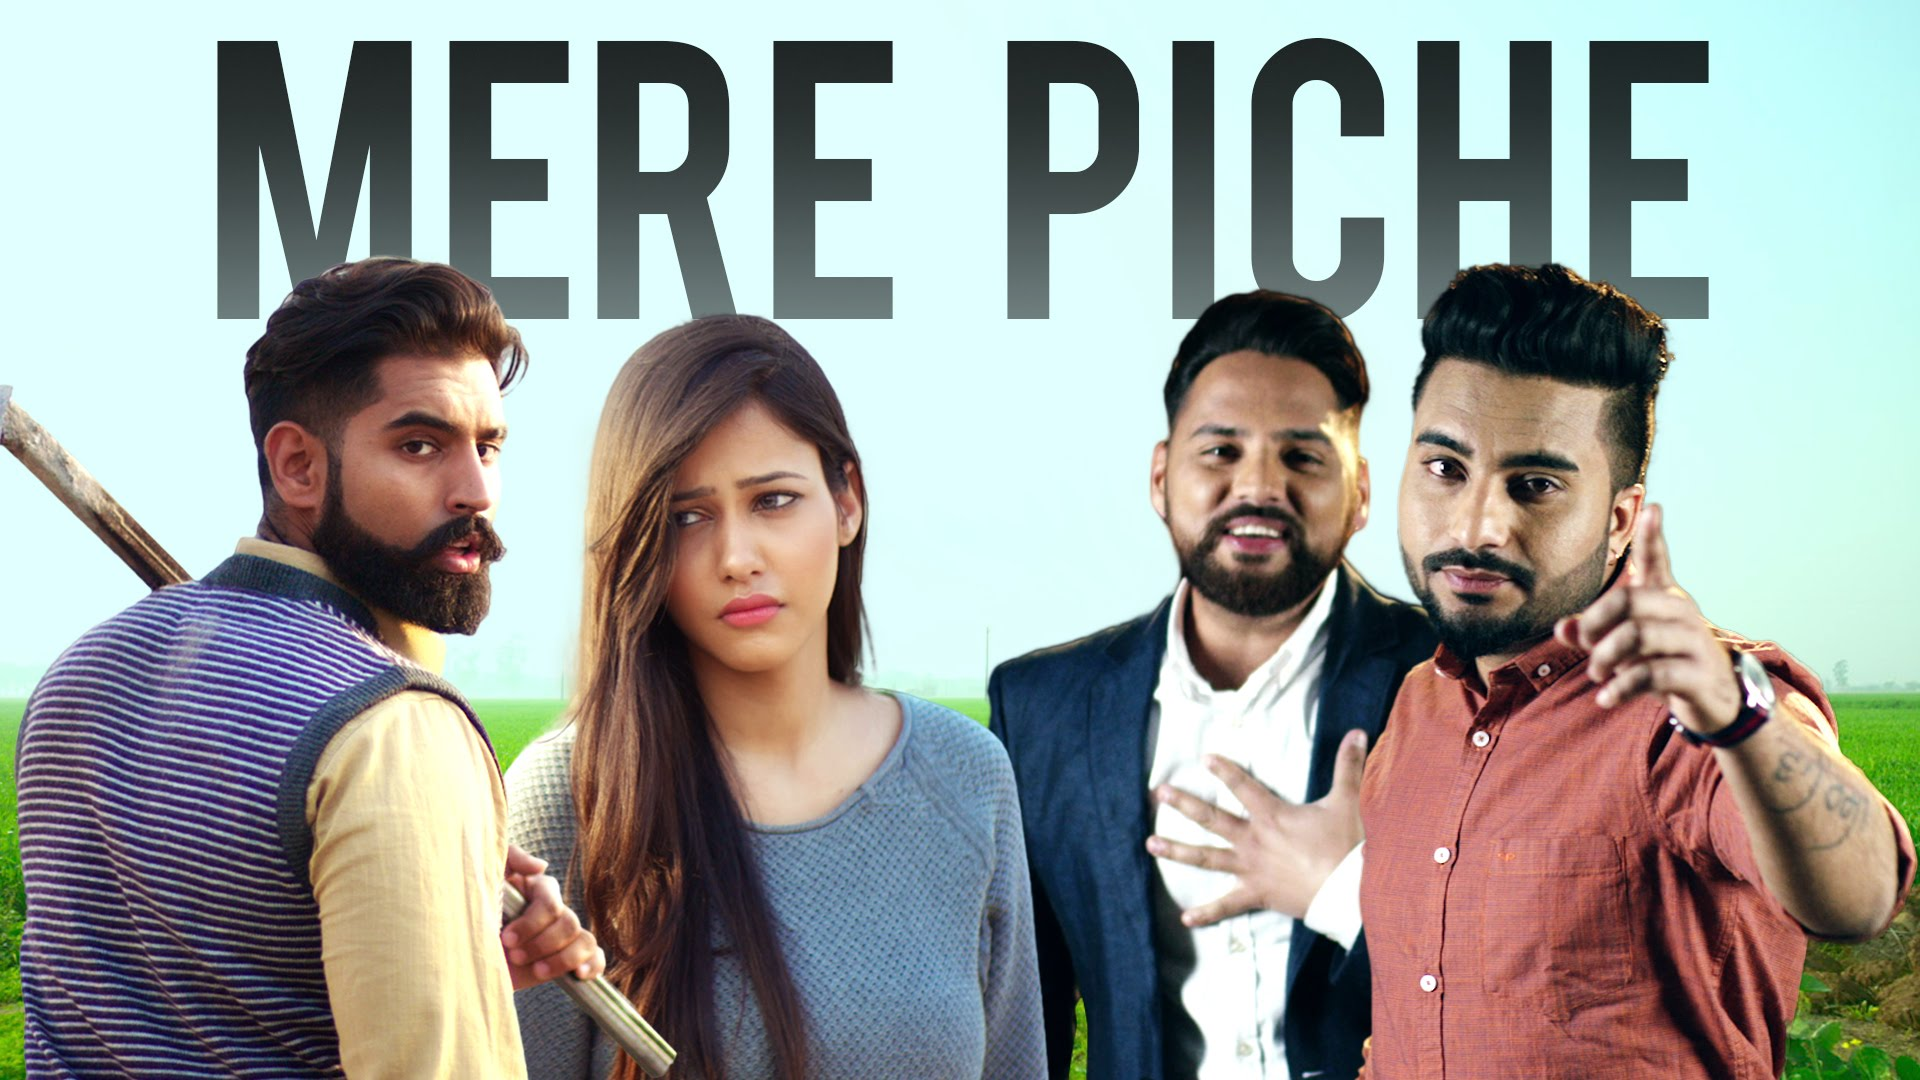 Mere Piche Lyrics & HD Video – Monty & Waris